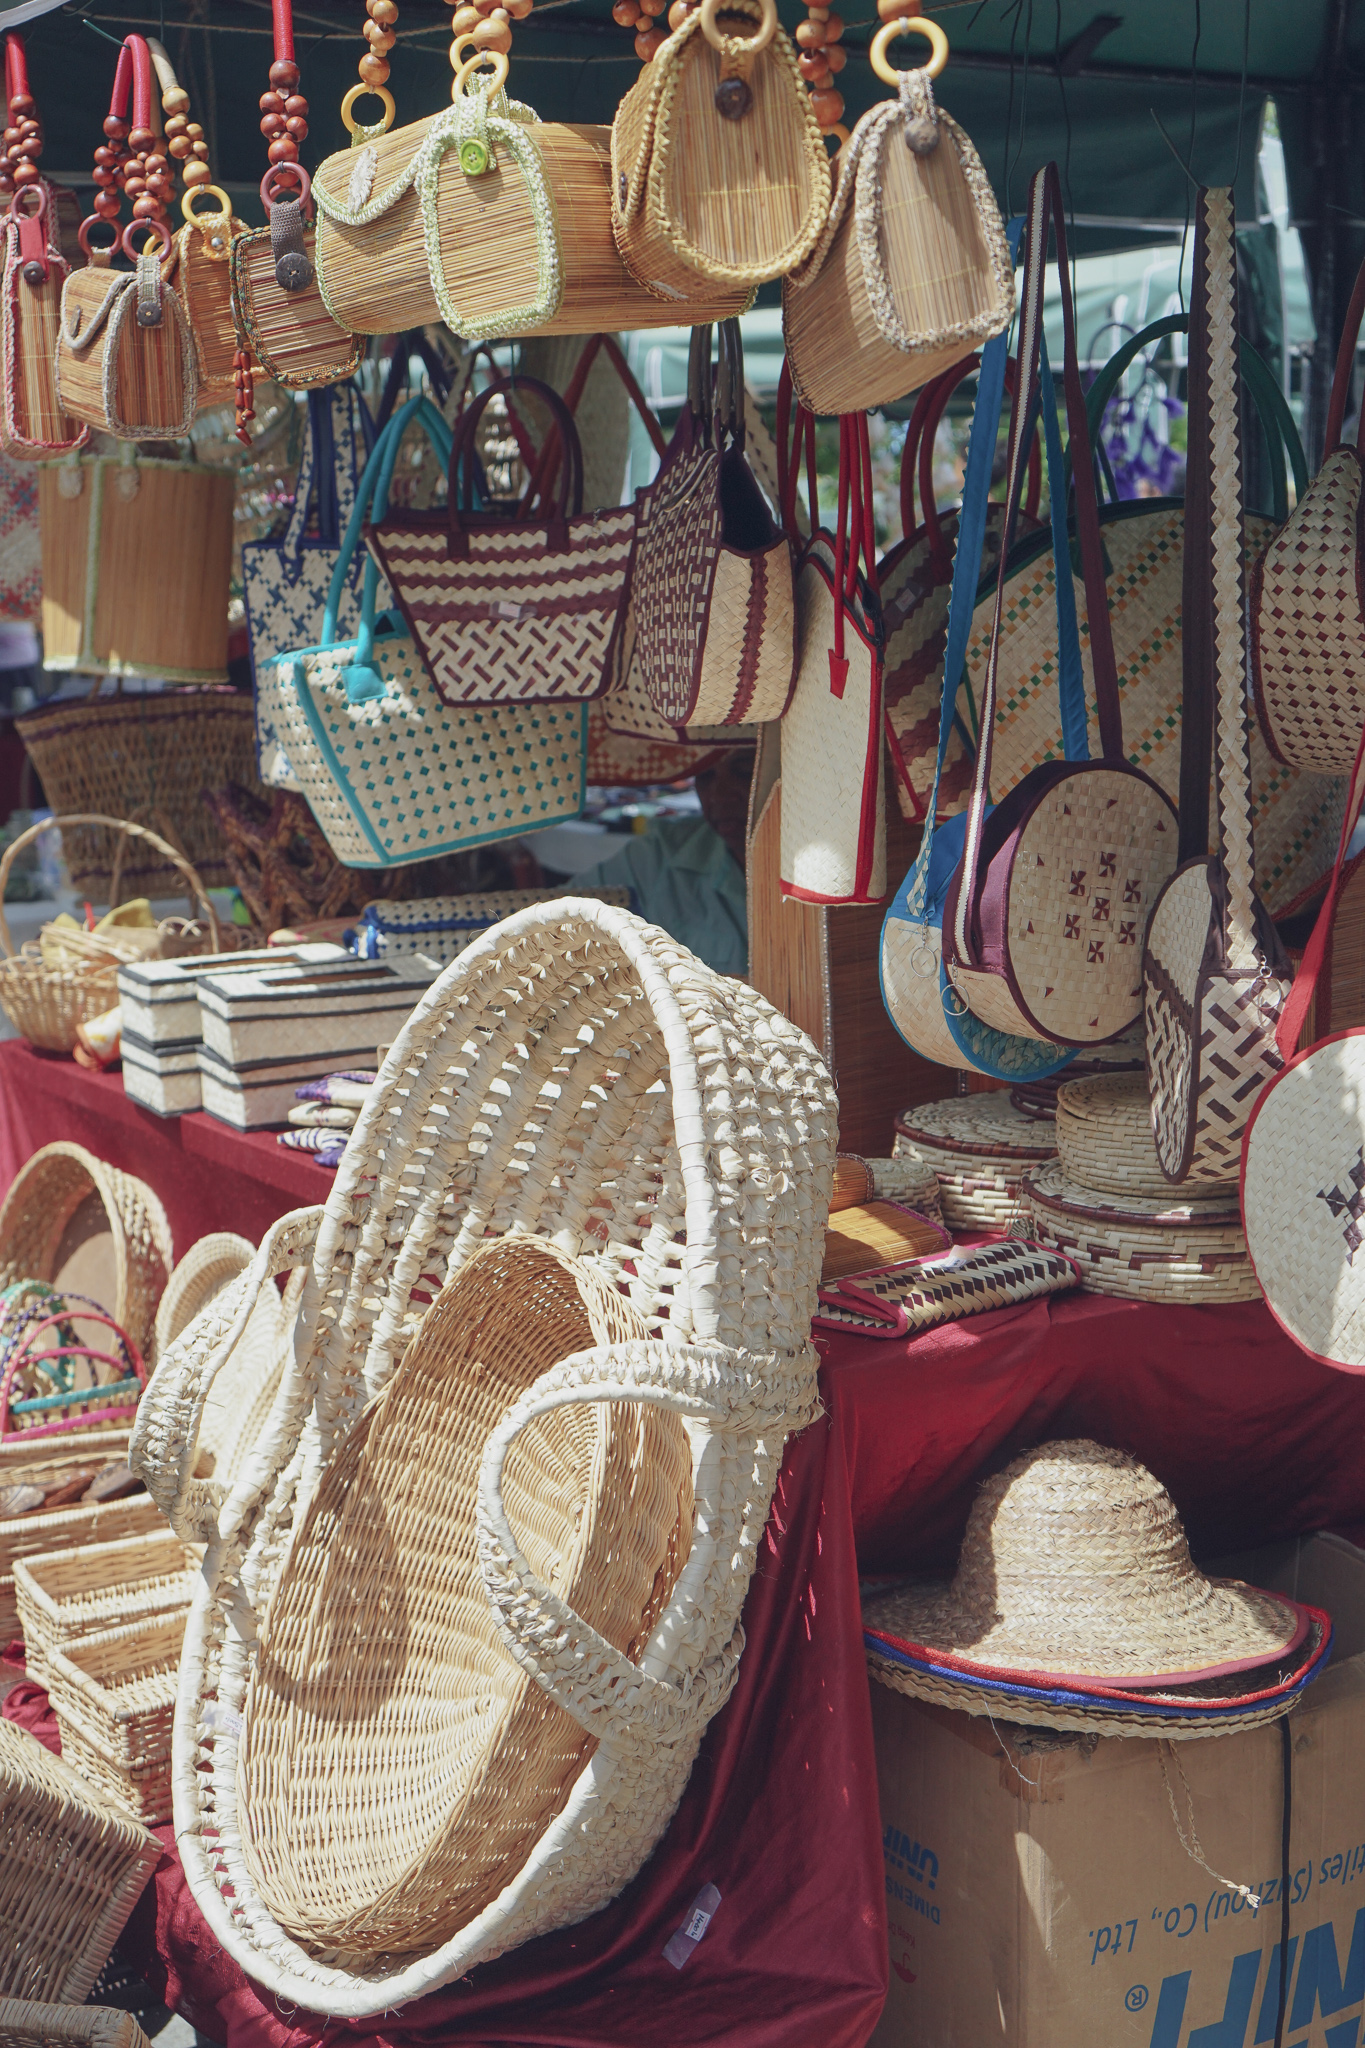 Colombo shopping guide - woven bags and baskets at Good Market